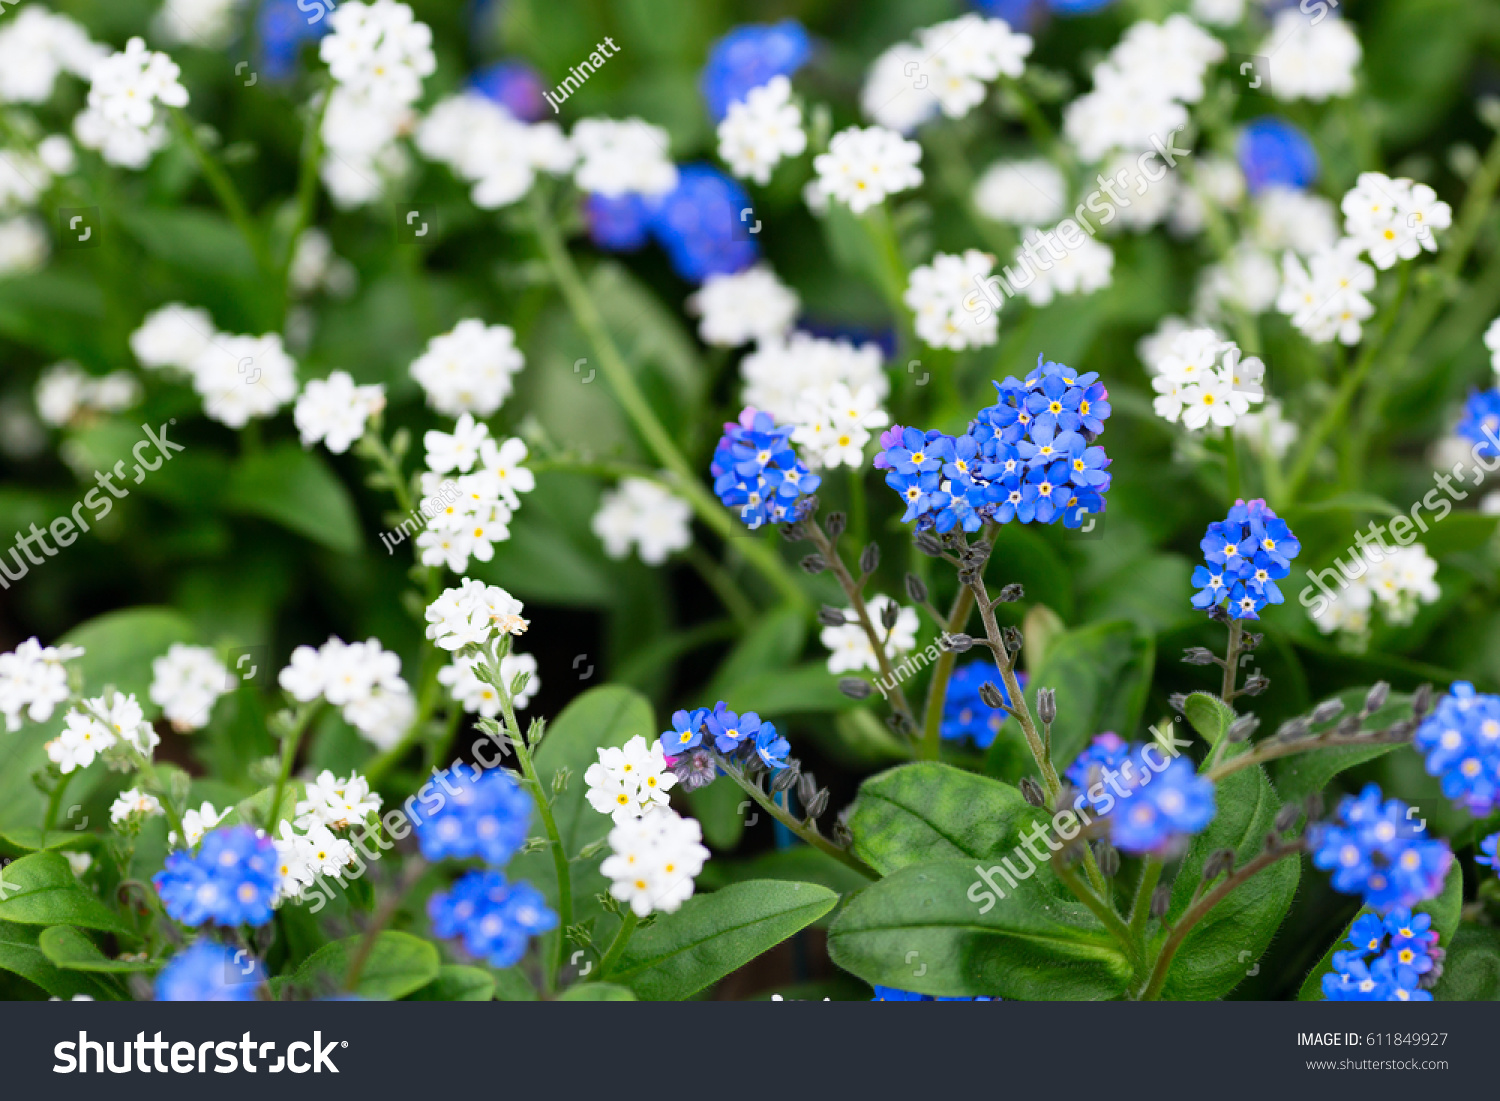 Delicate Bright Blue White Small Flowers Stock Photo Edit Now